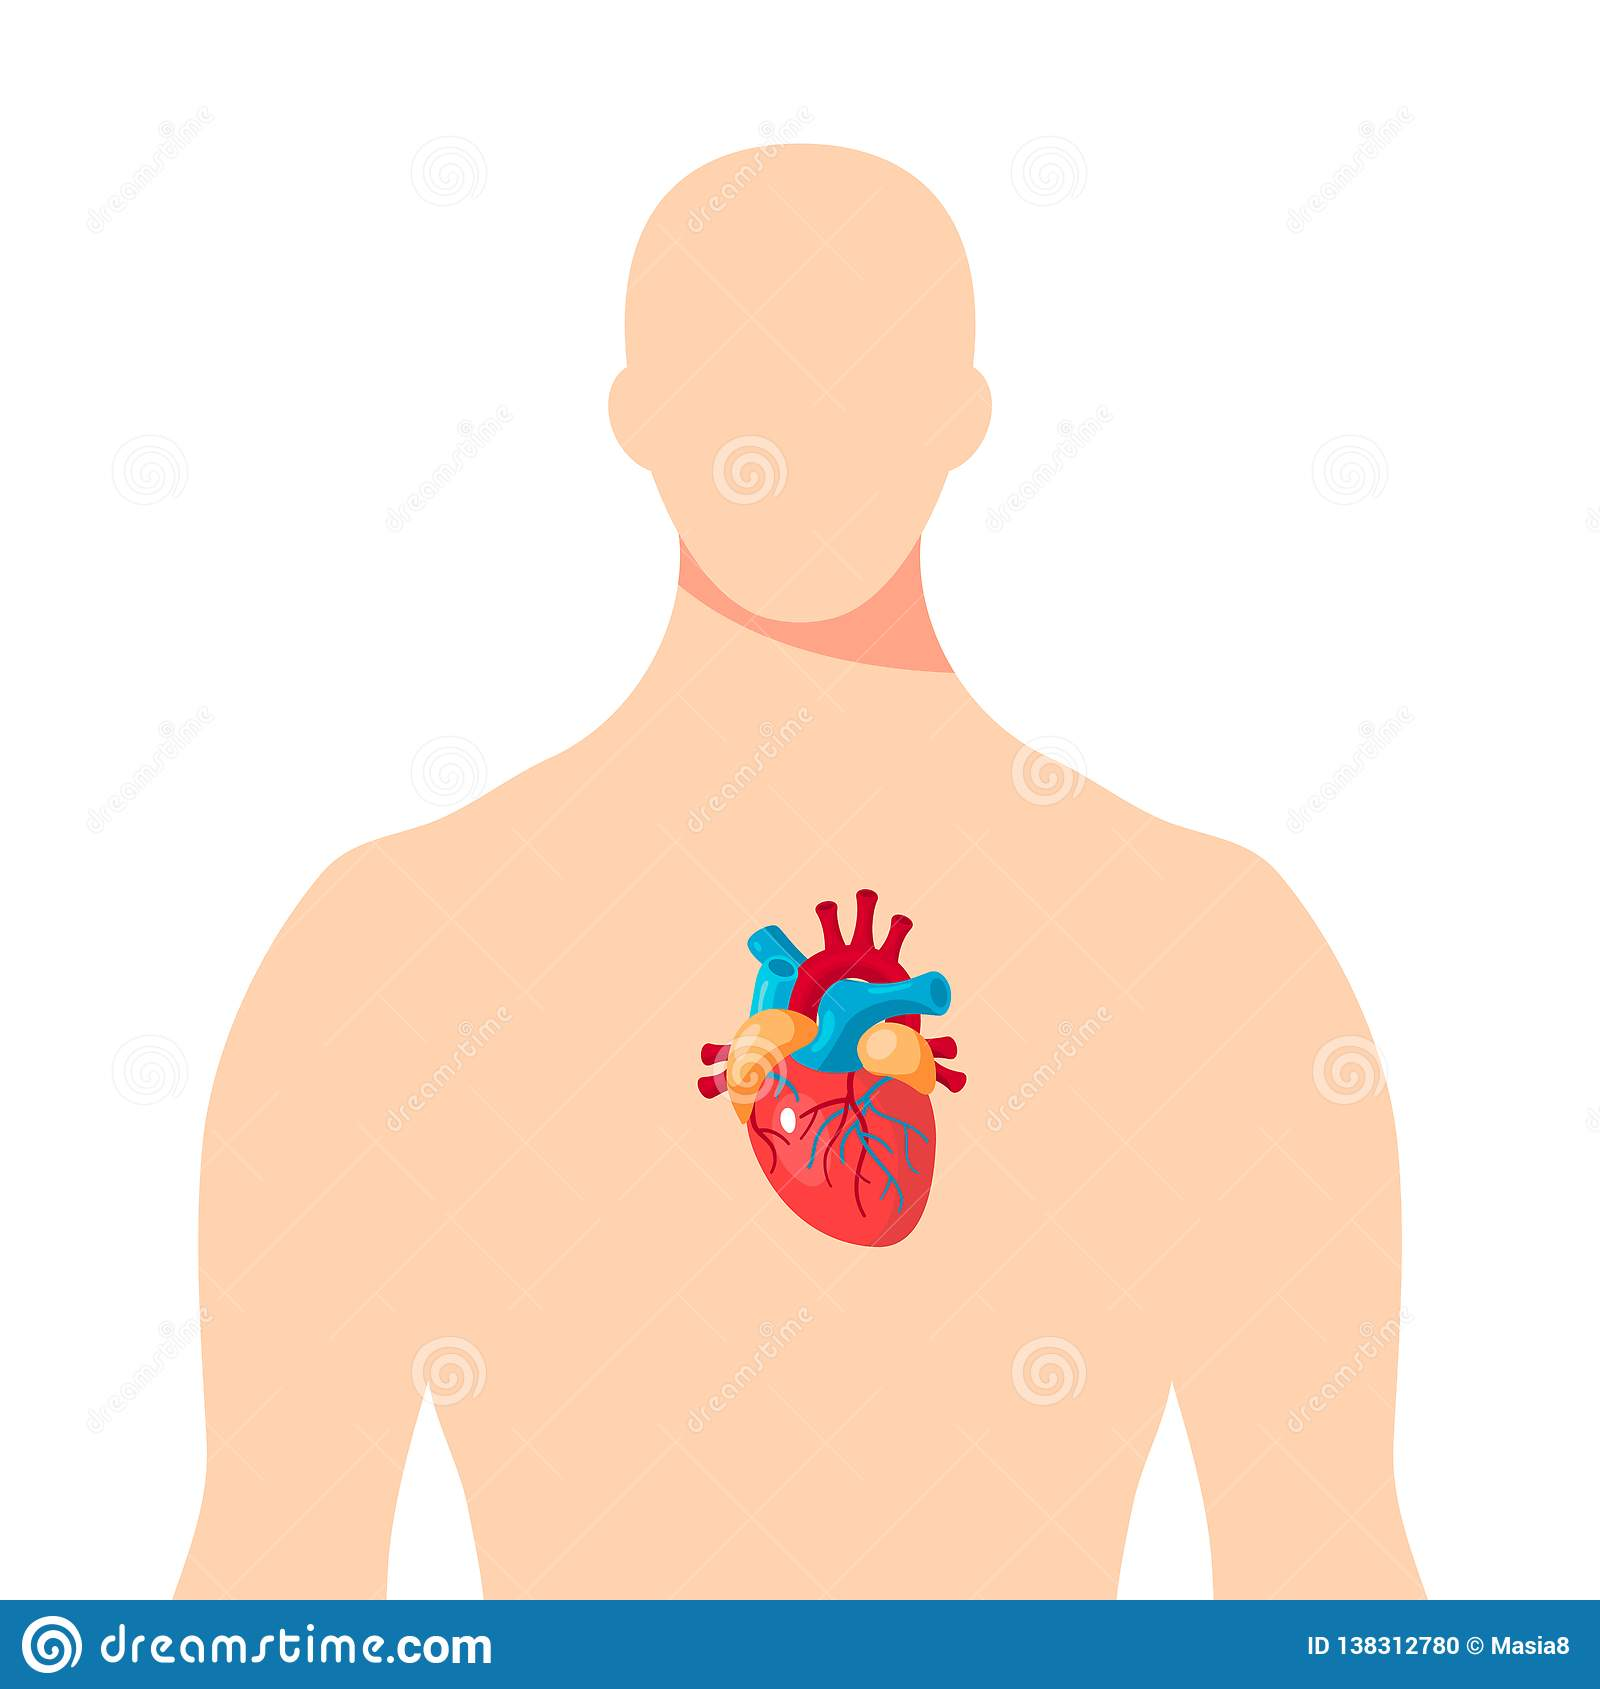 heart inside the male human body vector stock vector illustration of cardiovascular artery 138312780 https www dreamstime com heart inside male human body vector heart inside male human body vector illustration articles educational textbooks image138312780